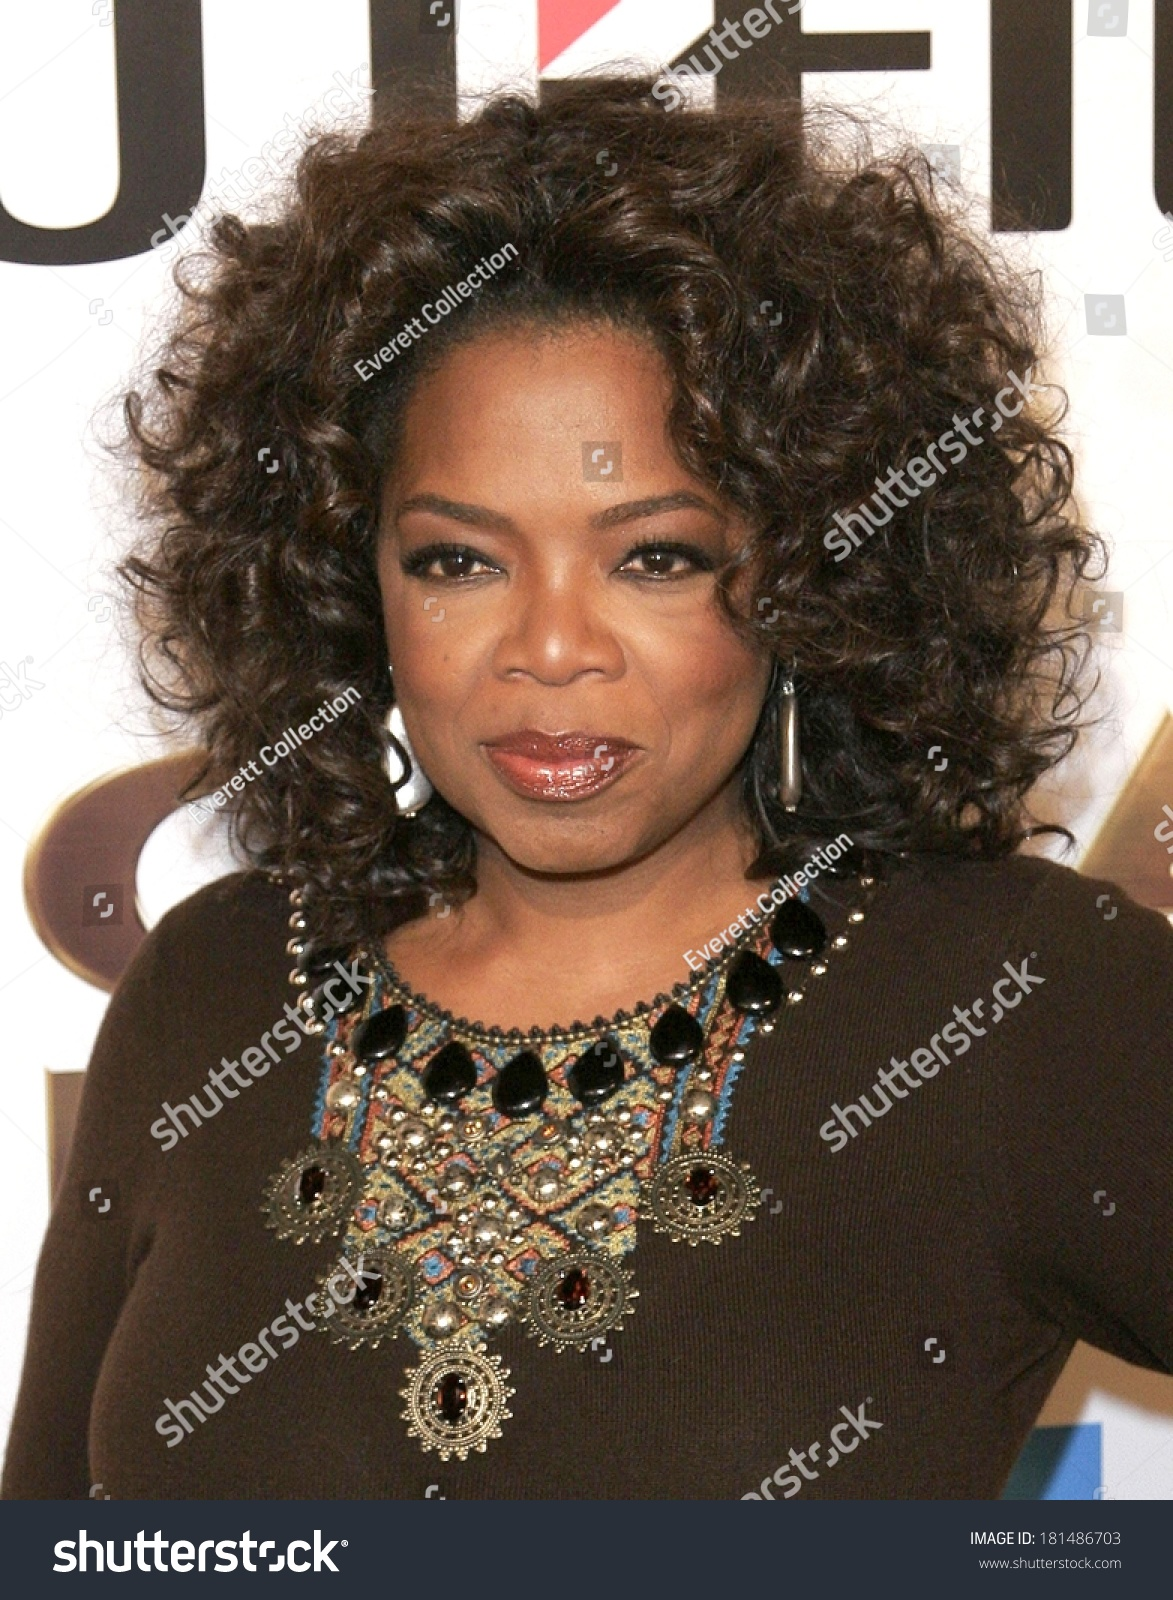 Oprah Winfrey At The Great Debaters Premiere, Arclight Cinerama Dome, Los Angeles, Ca, December 11, 2007 Stock Photo 181486703 : Shutterstock